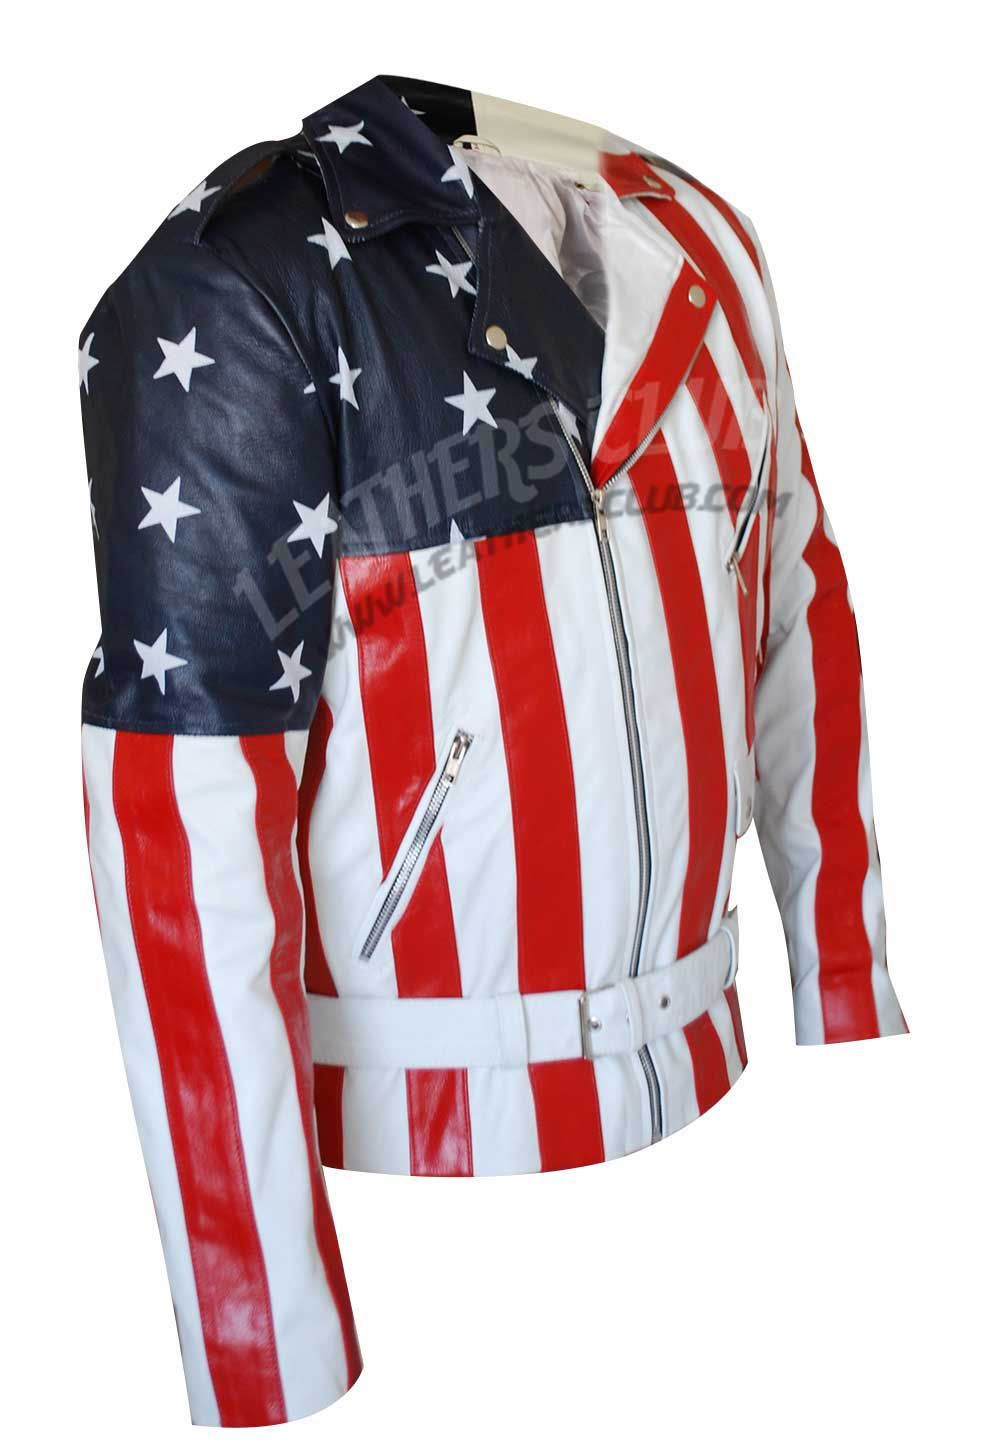 America Flag BikerJacket